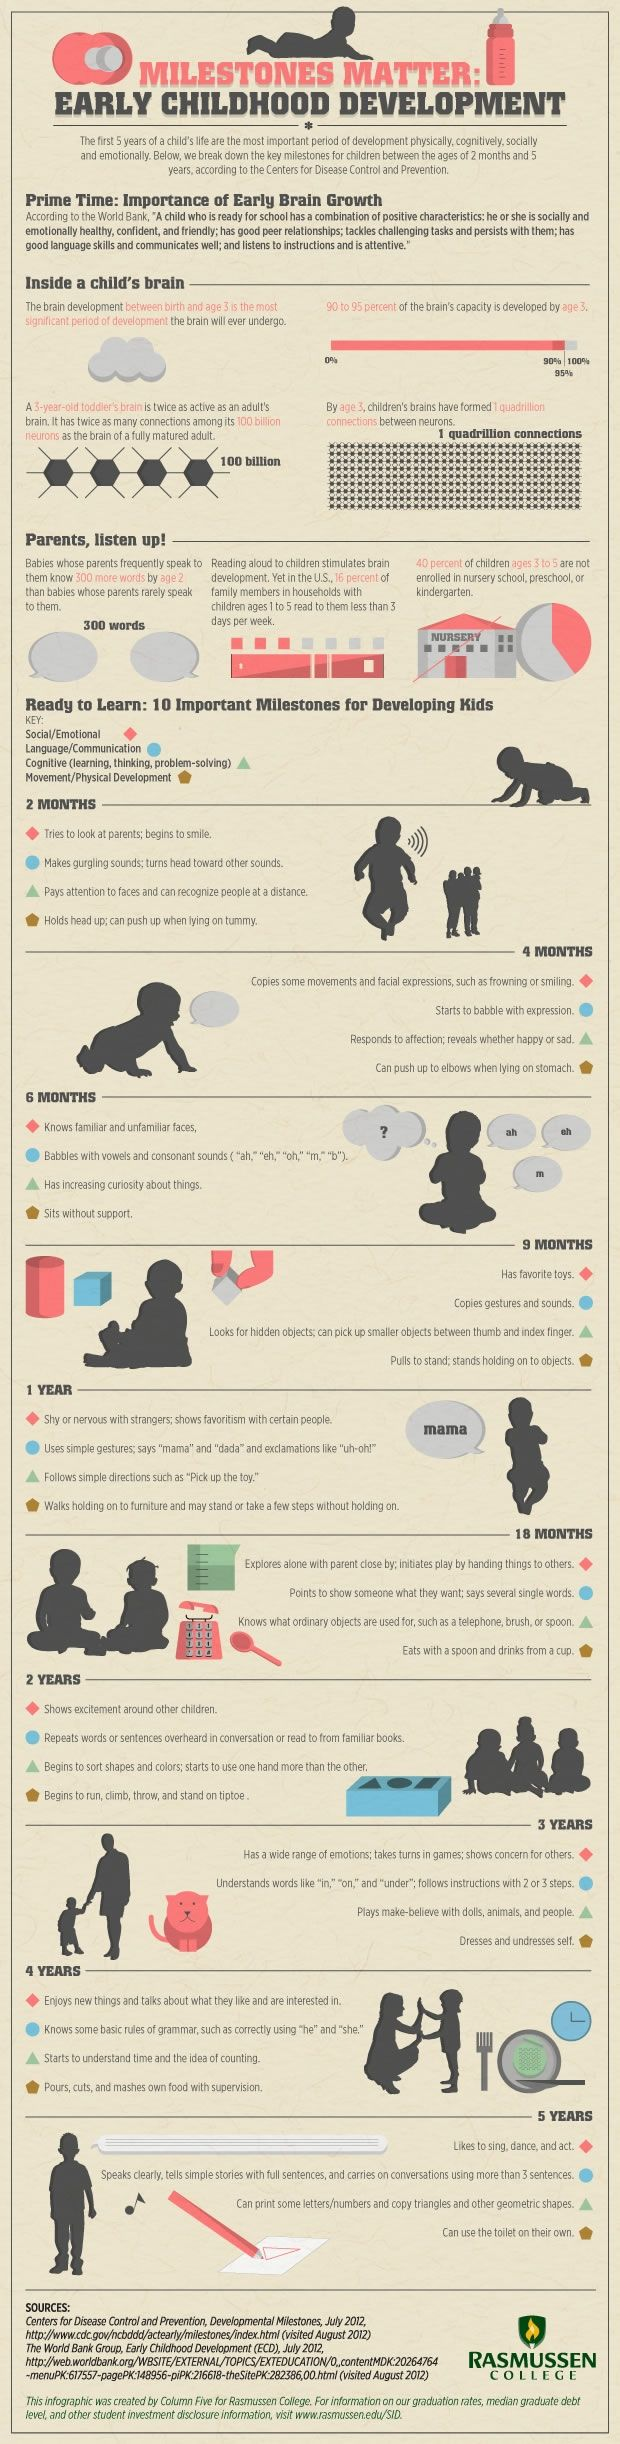 Infographic: Milestones Matter, Early Childhood Development